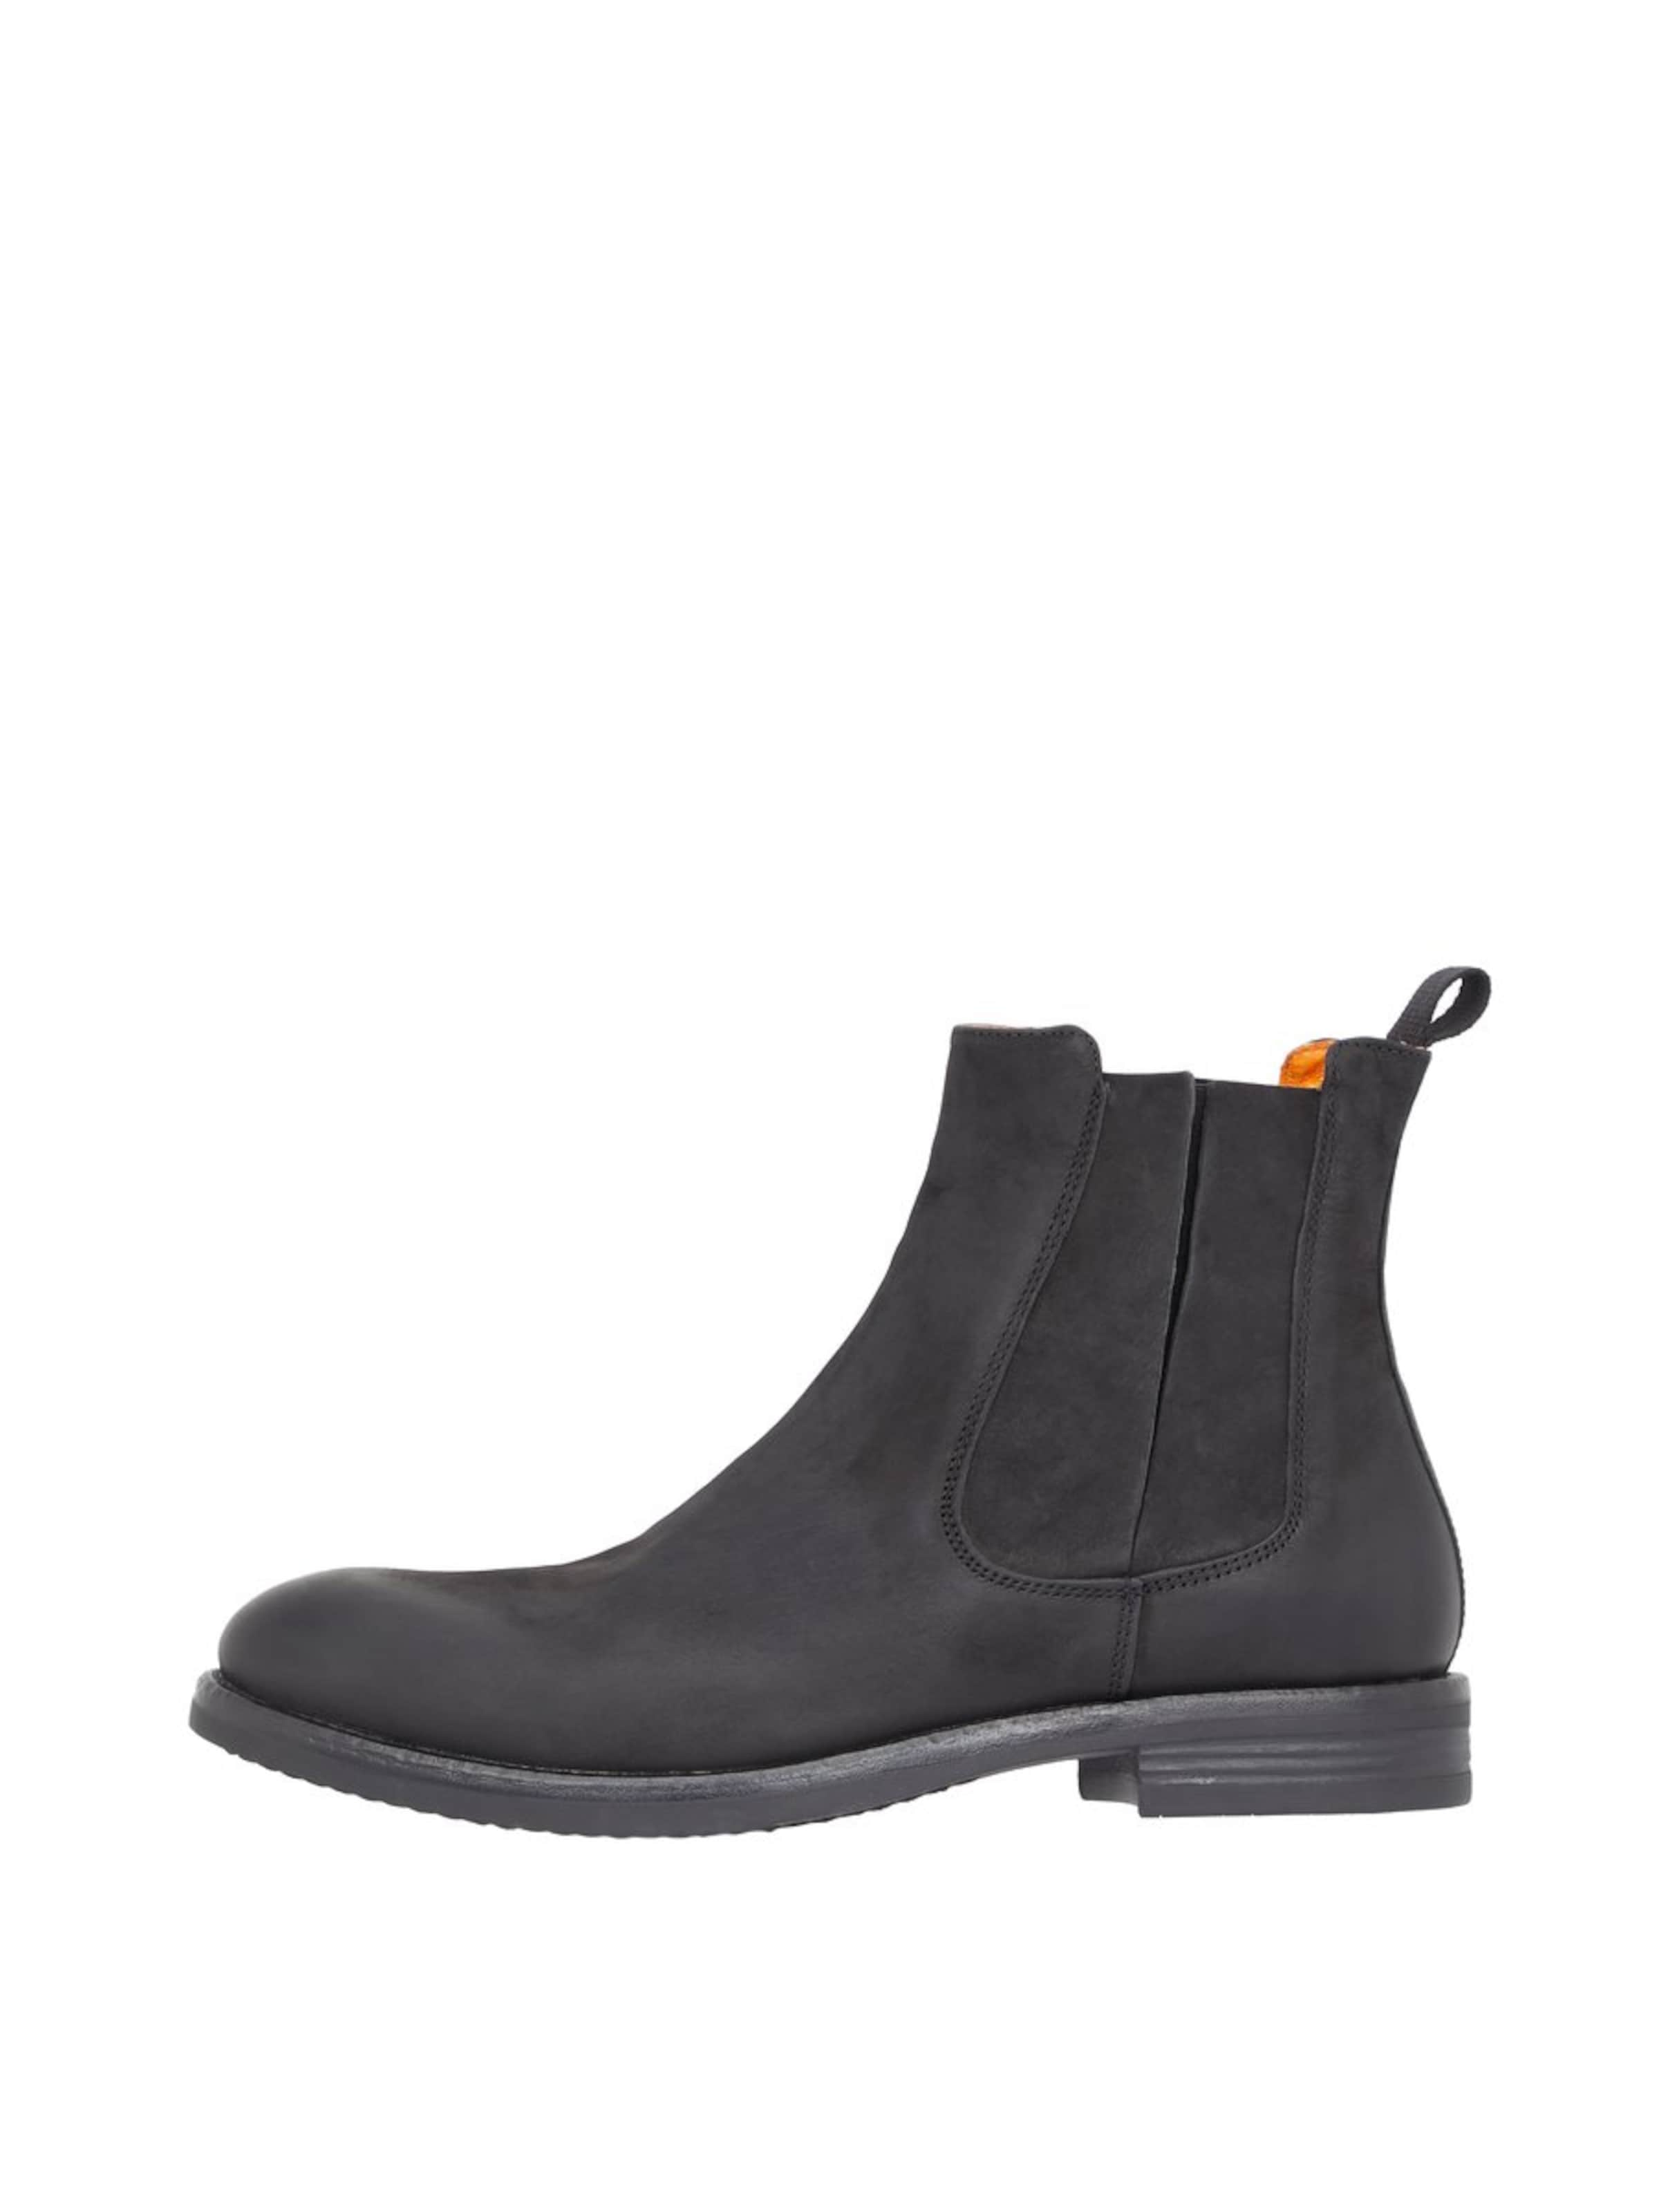 Noir Bianco En Chiné Chelsea 'ace' Boots WE9YHD2Ie